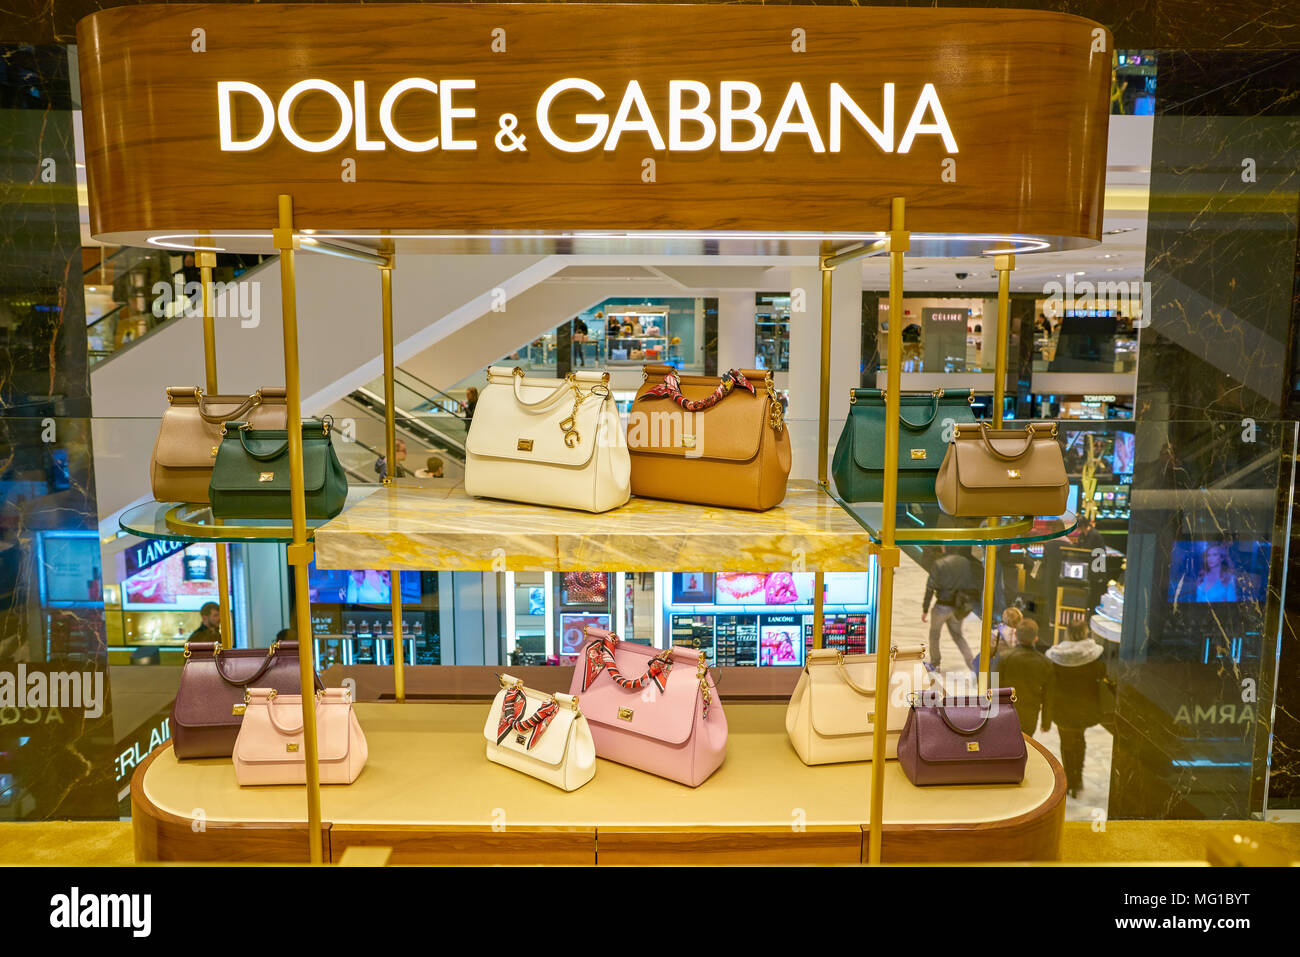 MILAN, ITALY - CIRCA NOVEMBER, 2017: Dolce & Gabbana bags on display at Rinascente. Rinascente is a collection of high-end stores. - Stock Image